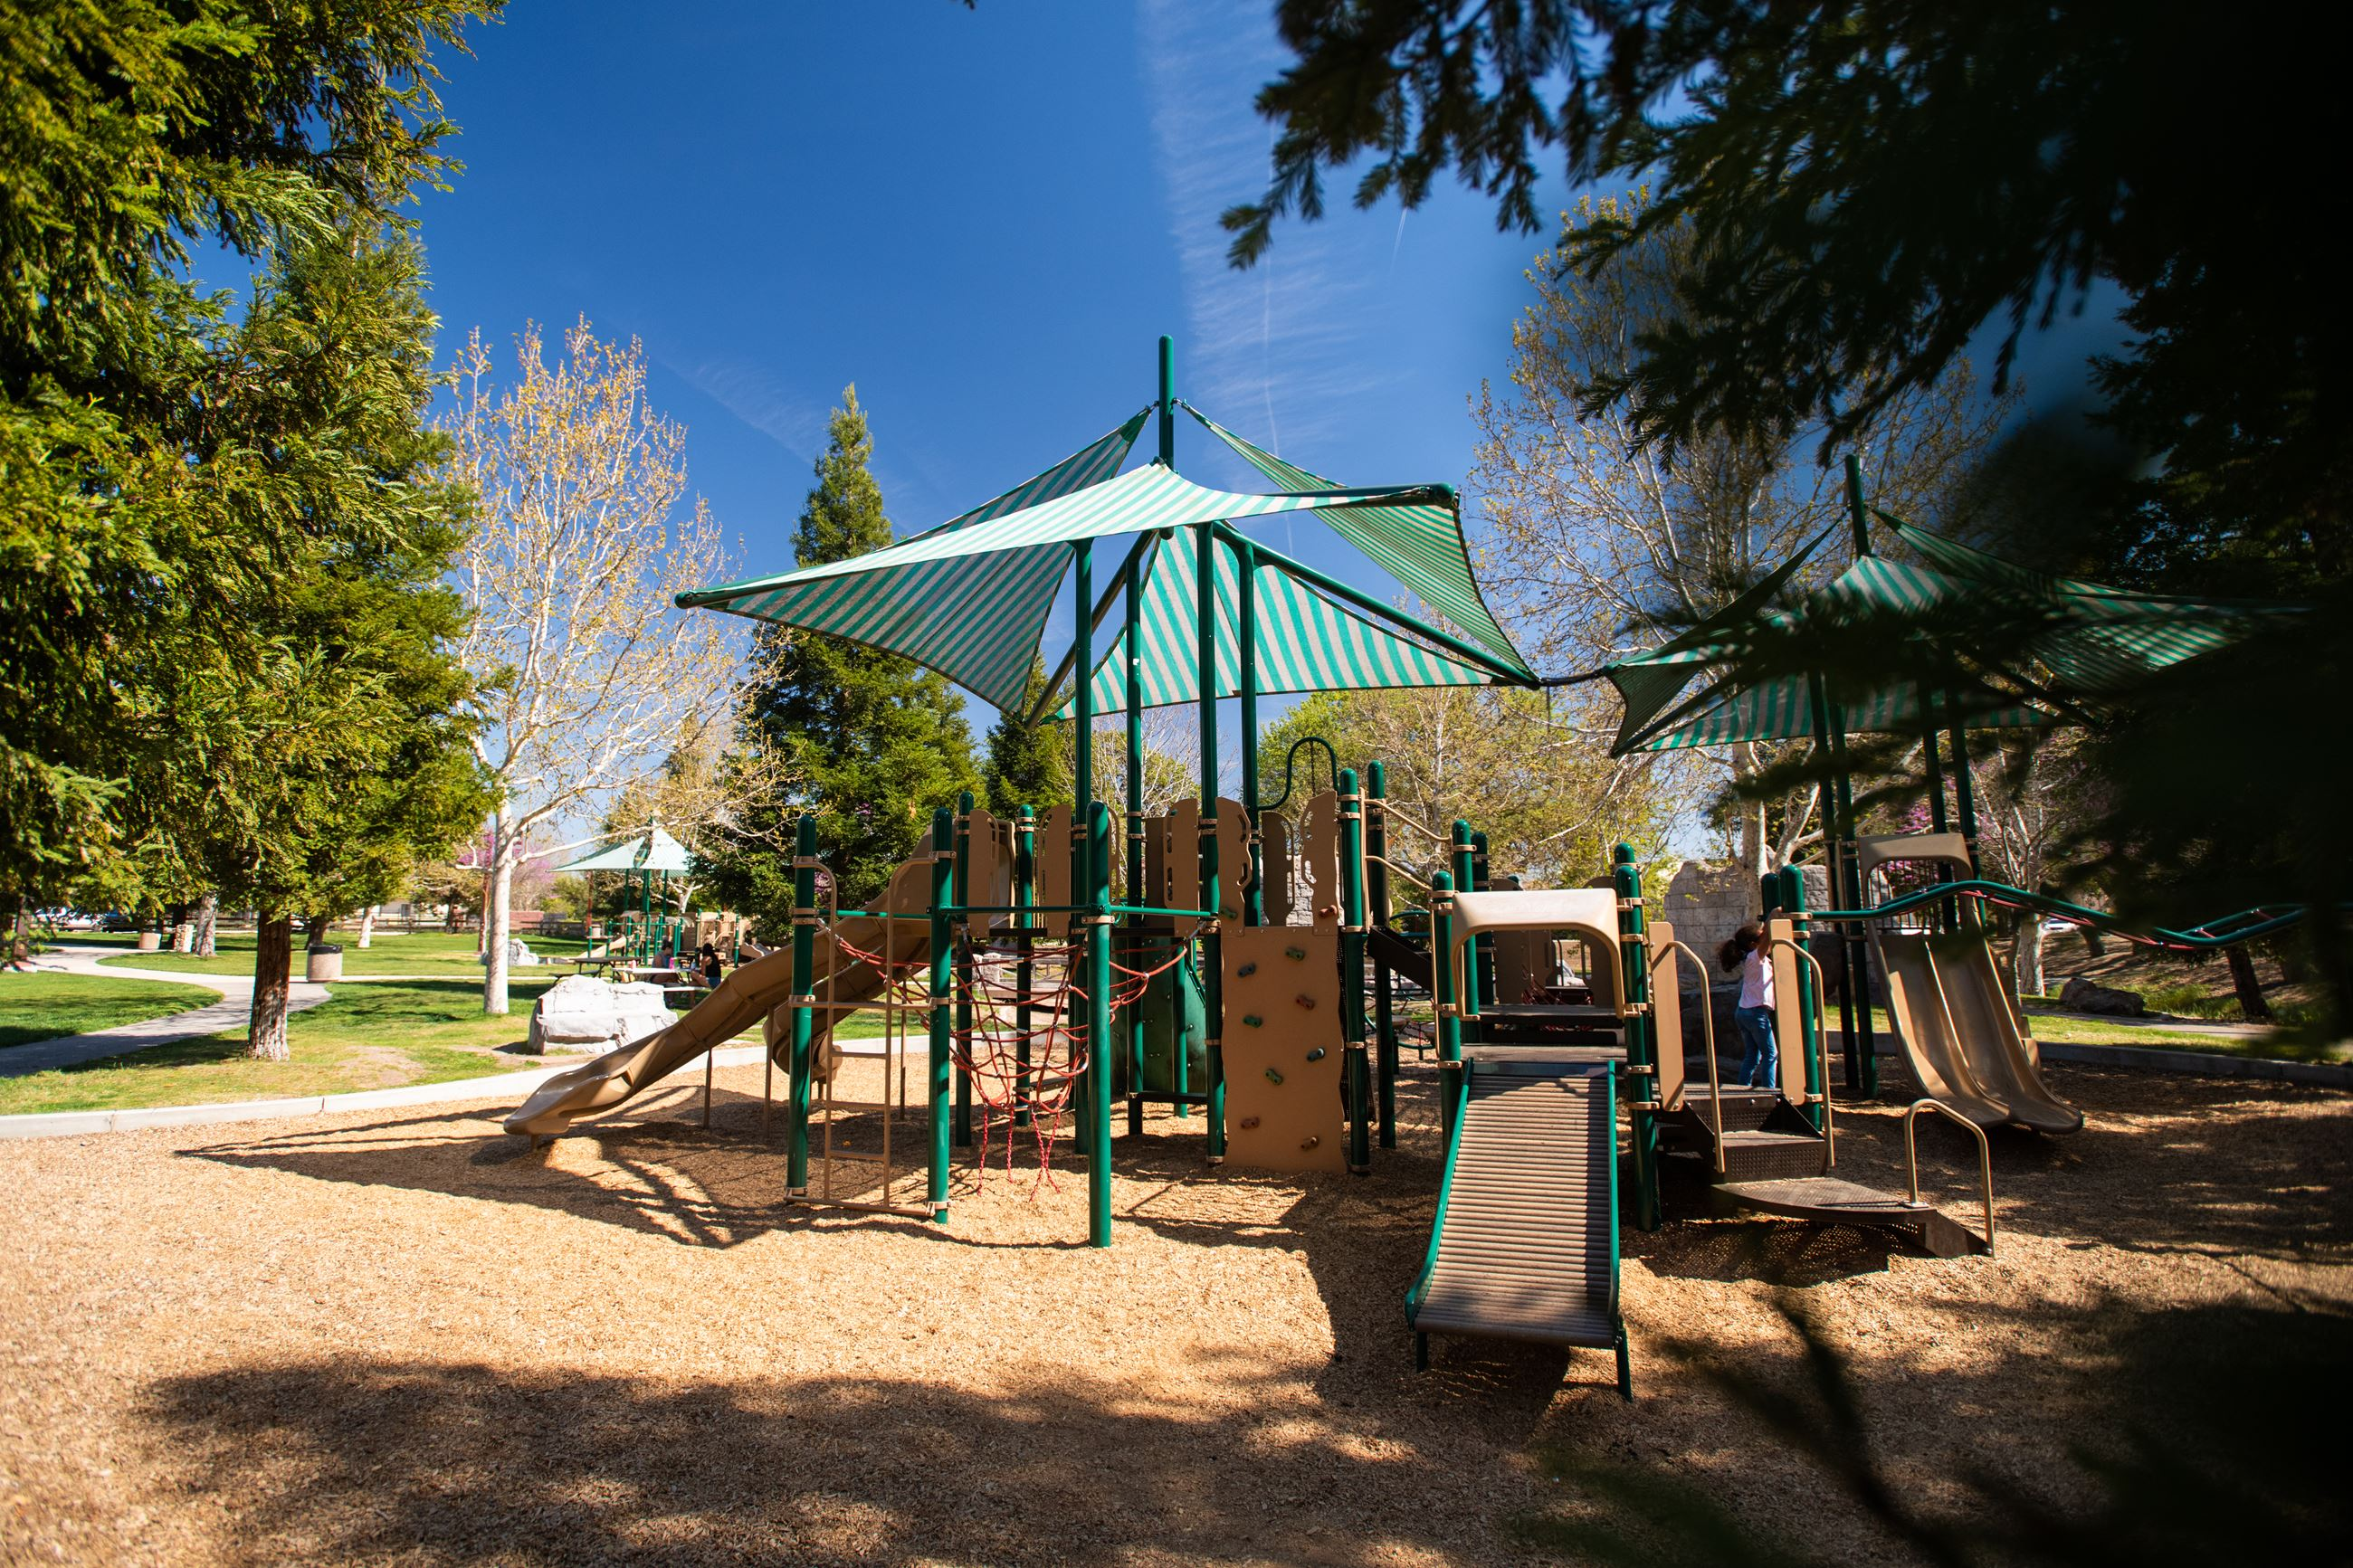 Sherwood Park Playground (climbing obstacles)